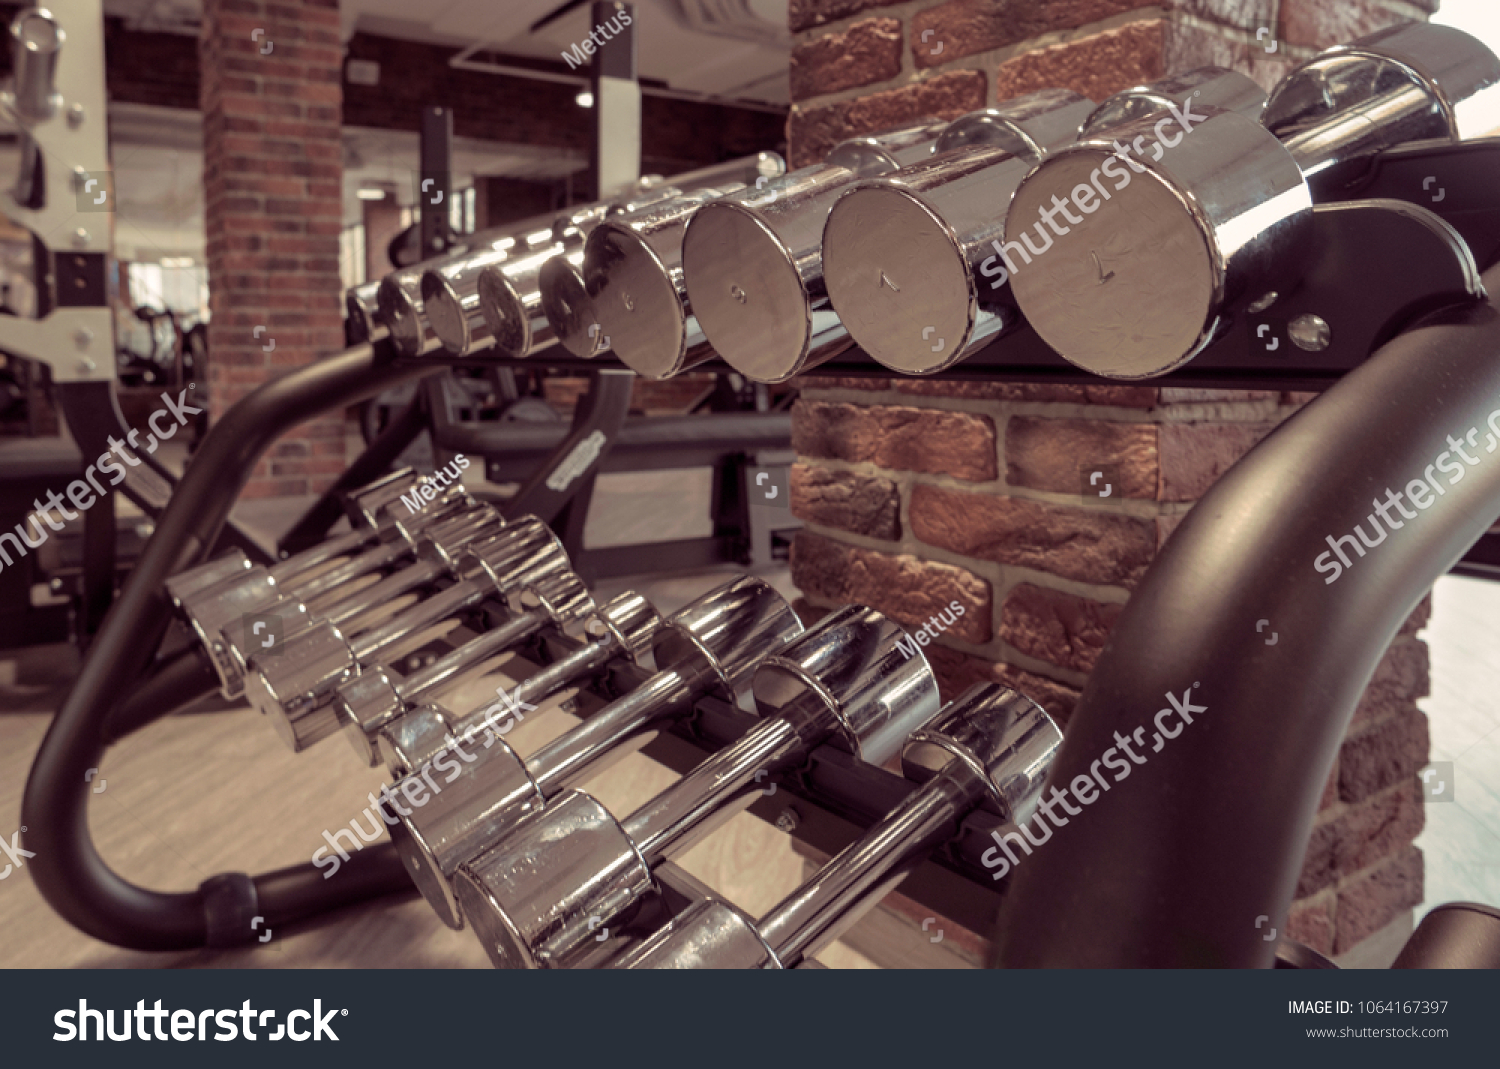 Rows of metal dumbbells on rack in the gym or sport club. Weight Training Equipment Vintage Brown Color Toned Image.